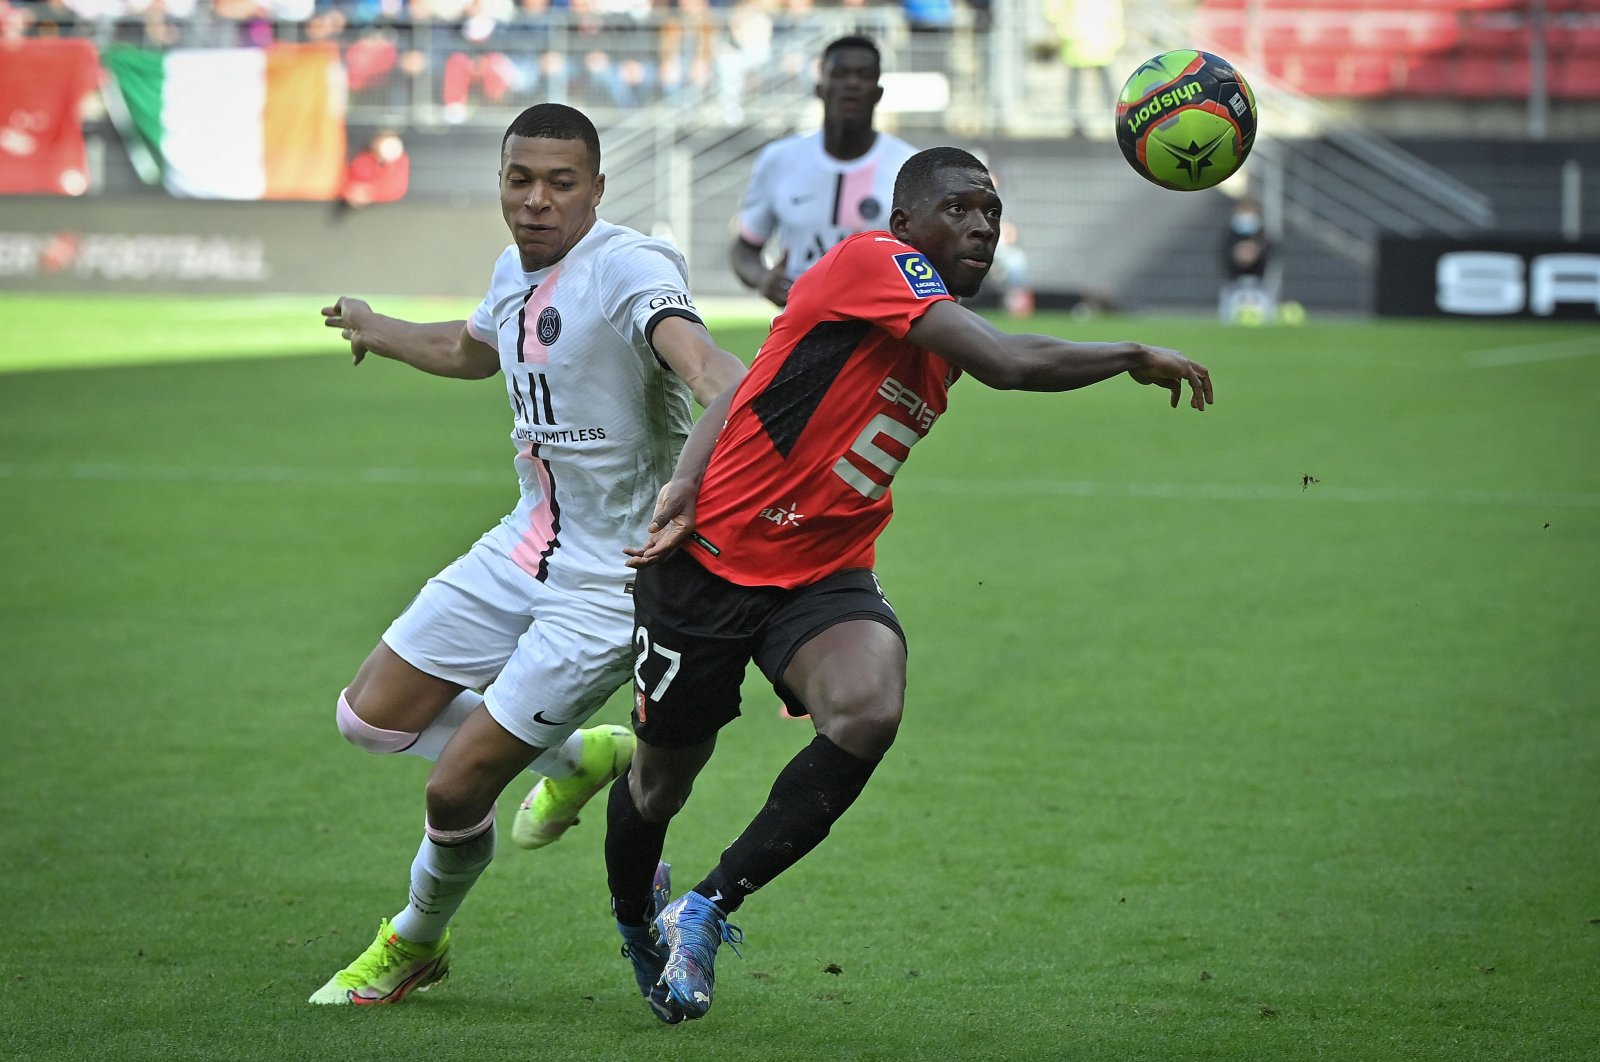 PSG's Kylian Mbappe (L) fights for the ball with Rennes' Hamari Traore (R) during a Ligue 1 match at the Roazhon Park in Rennes, France, Oct. 3, 2021. (AFP Photo)